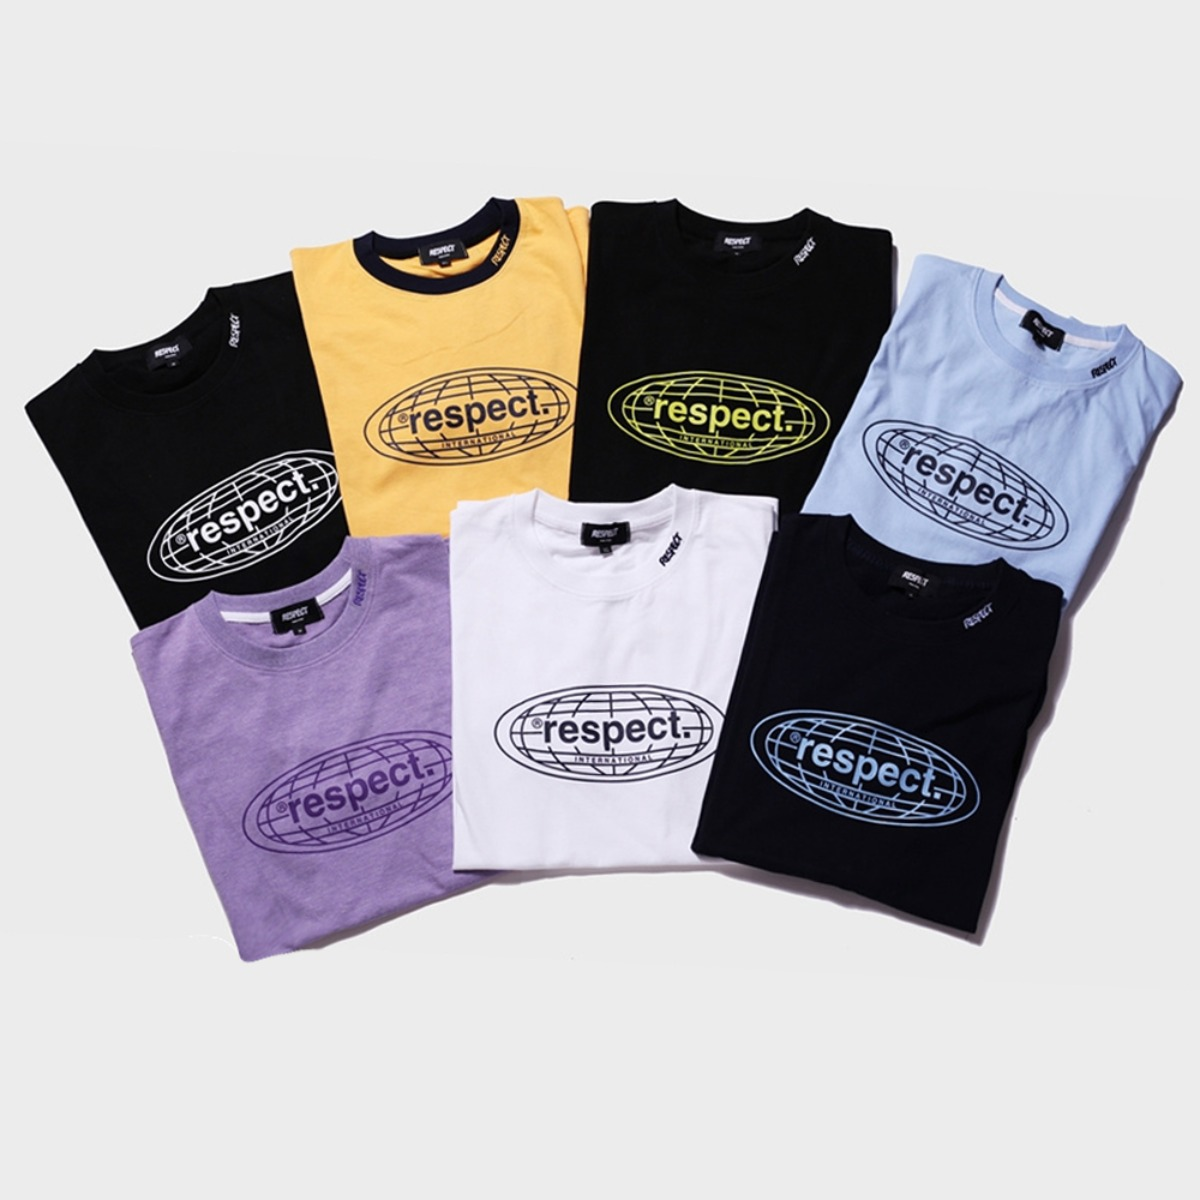 international front logo tee (7color)